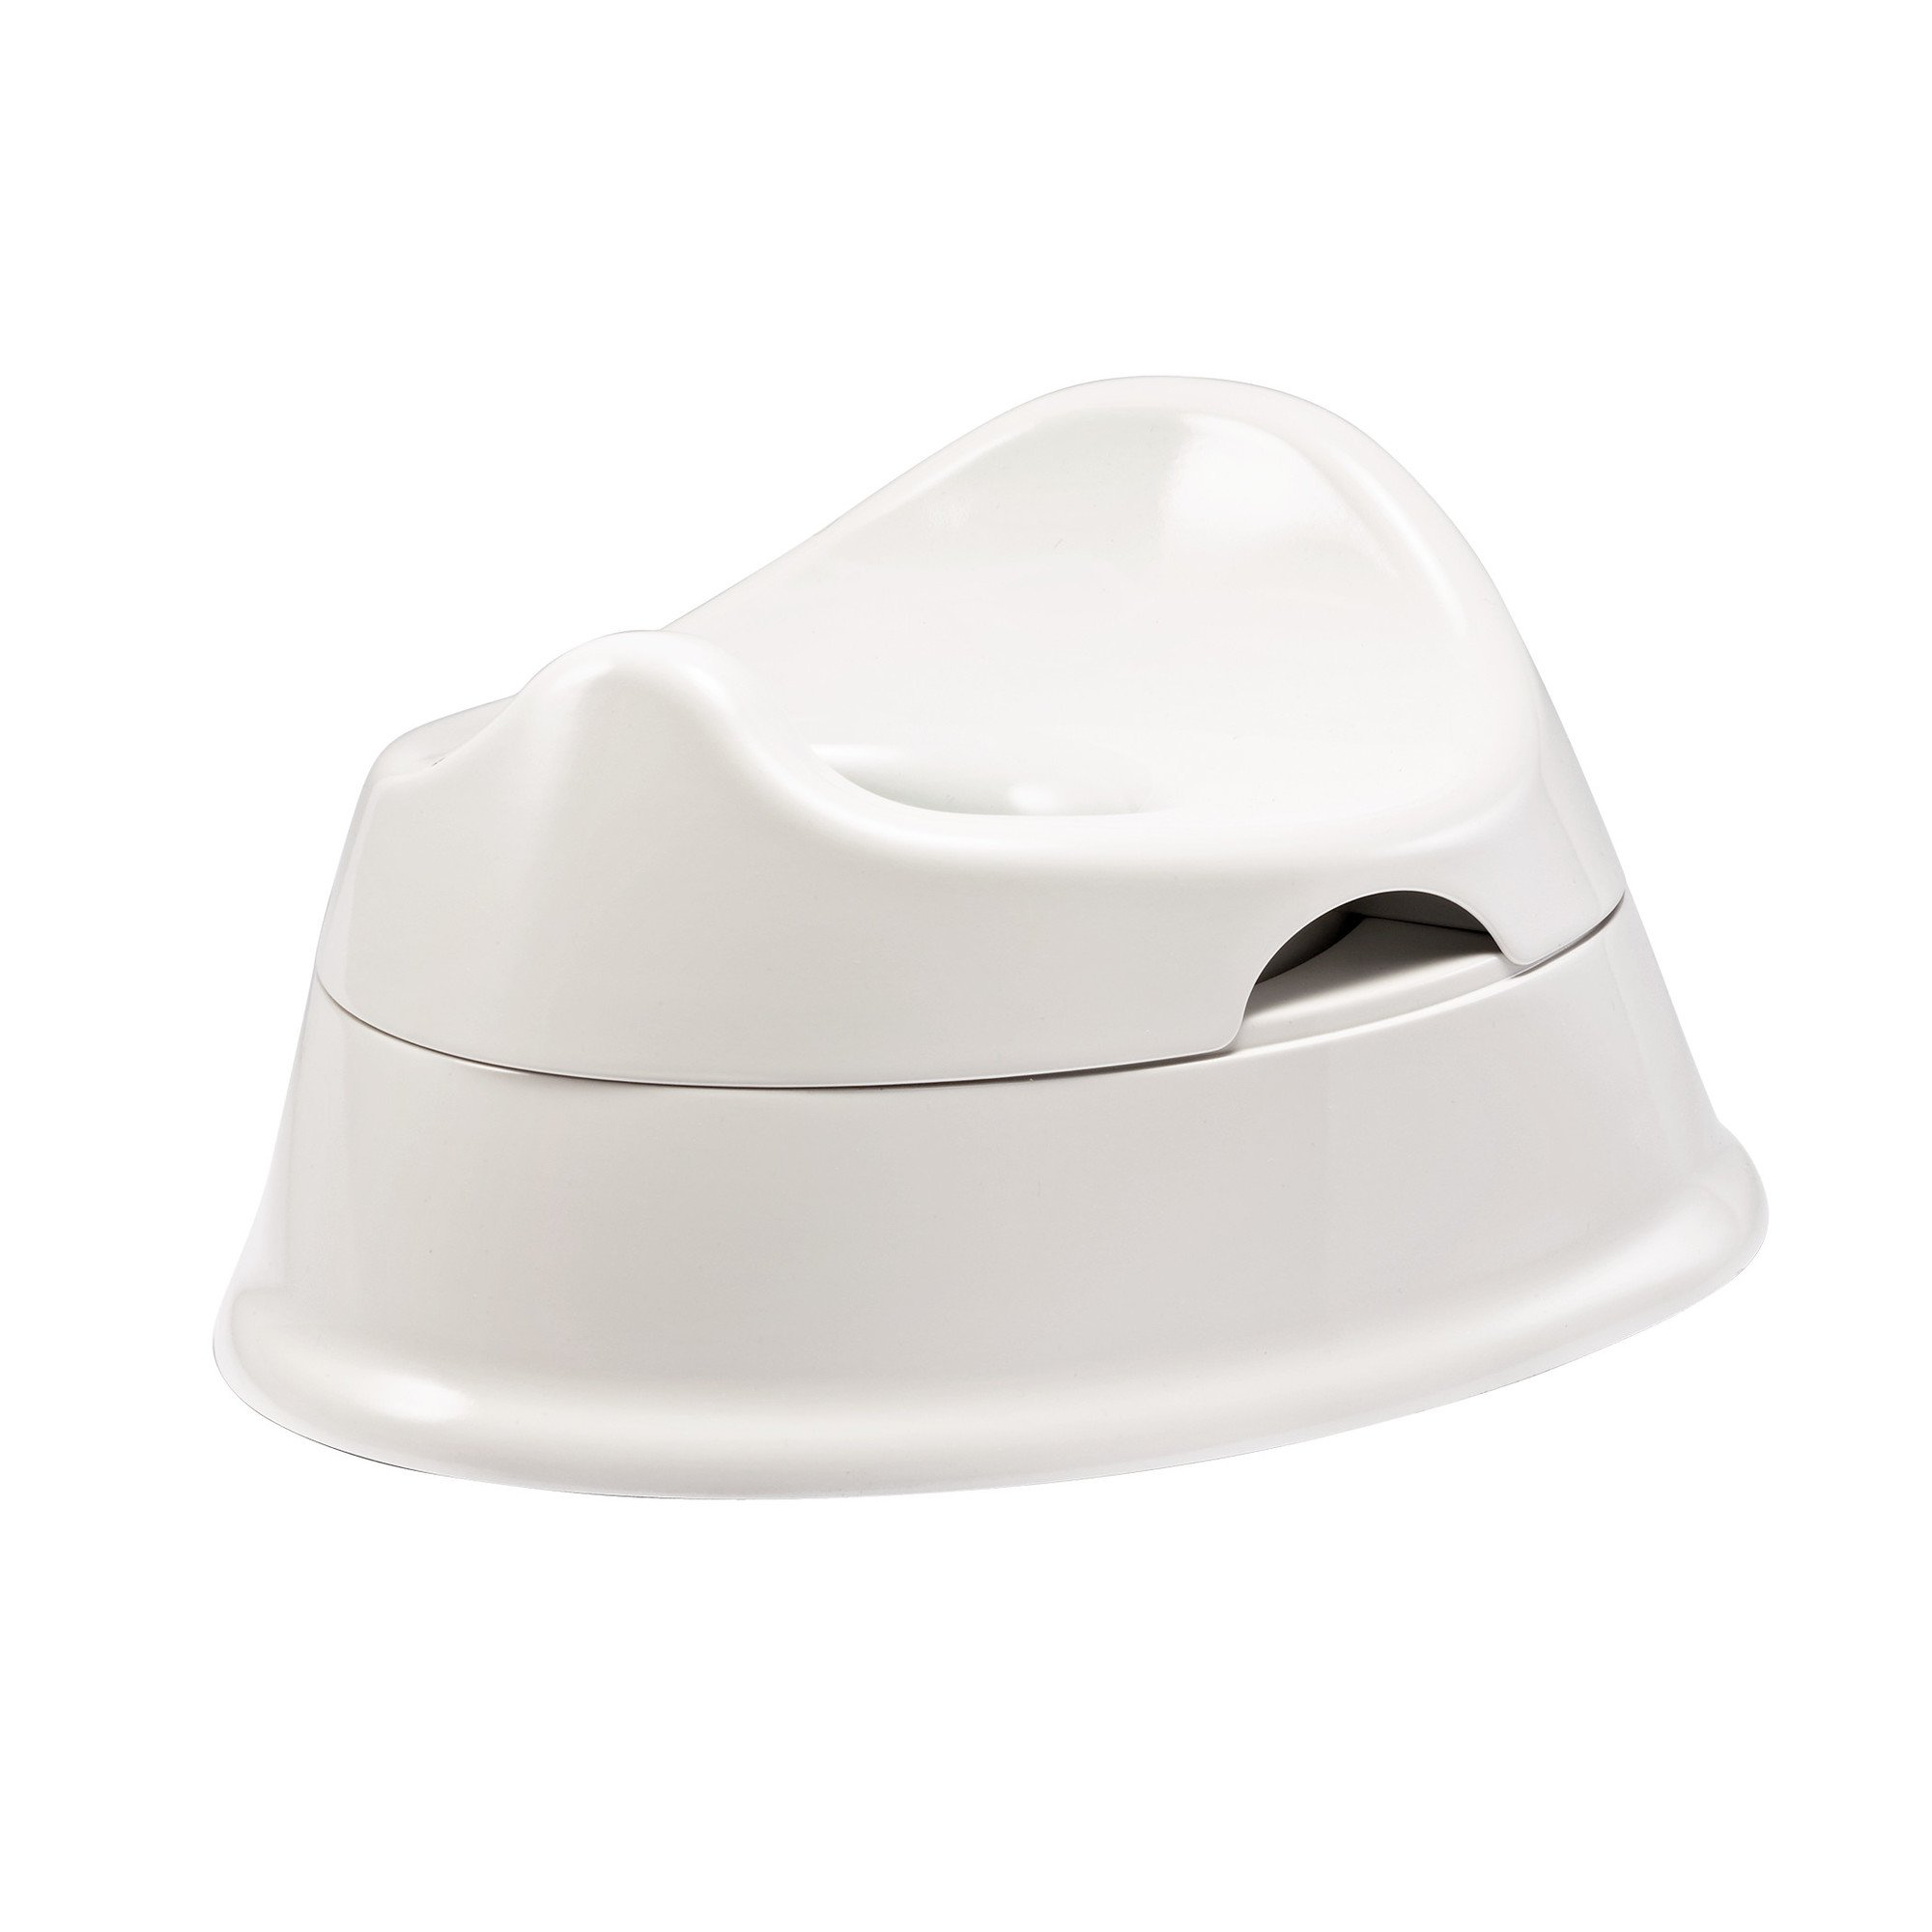 The First Years 2-in-1 Proper Position Potty Seat